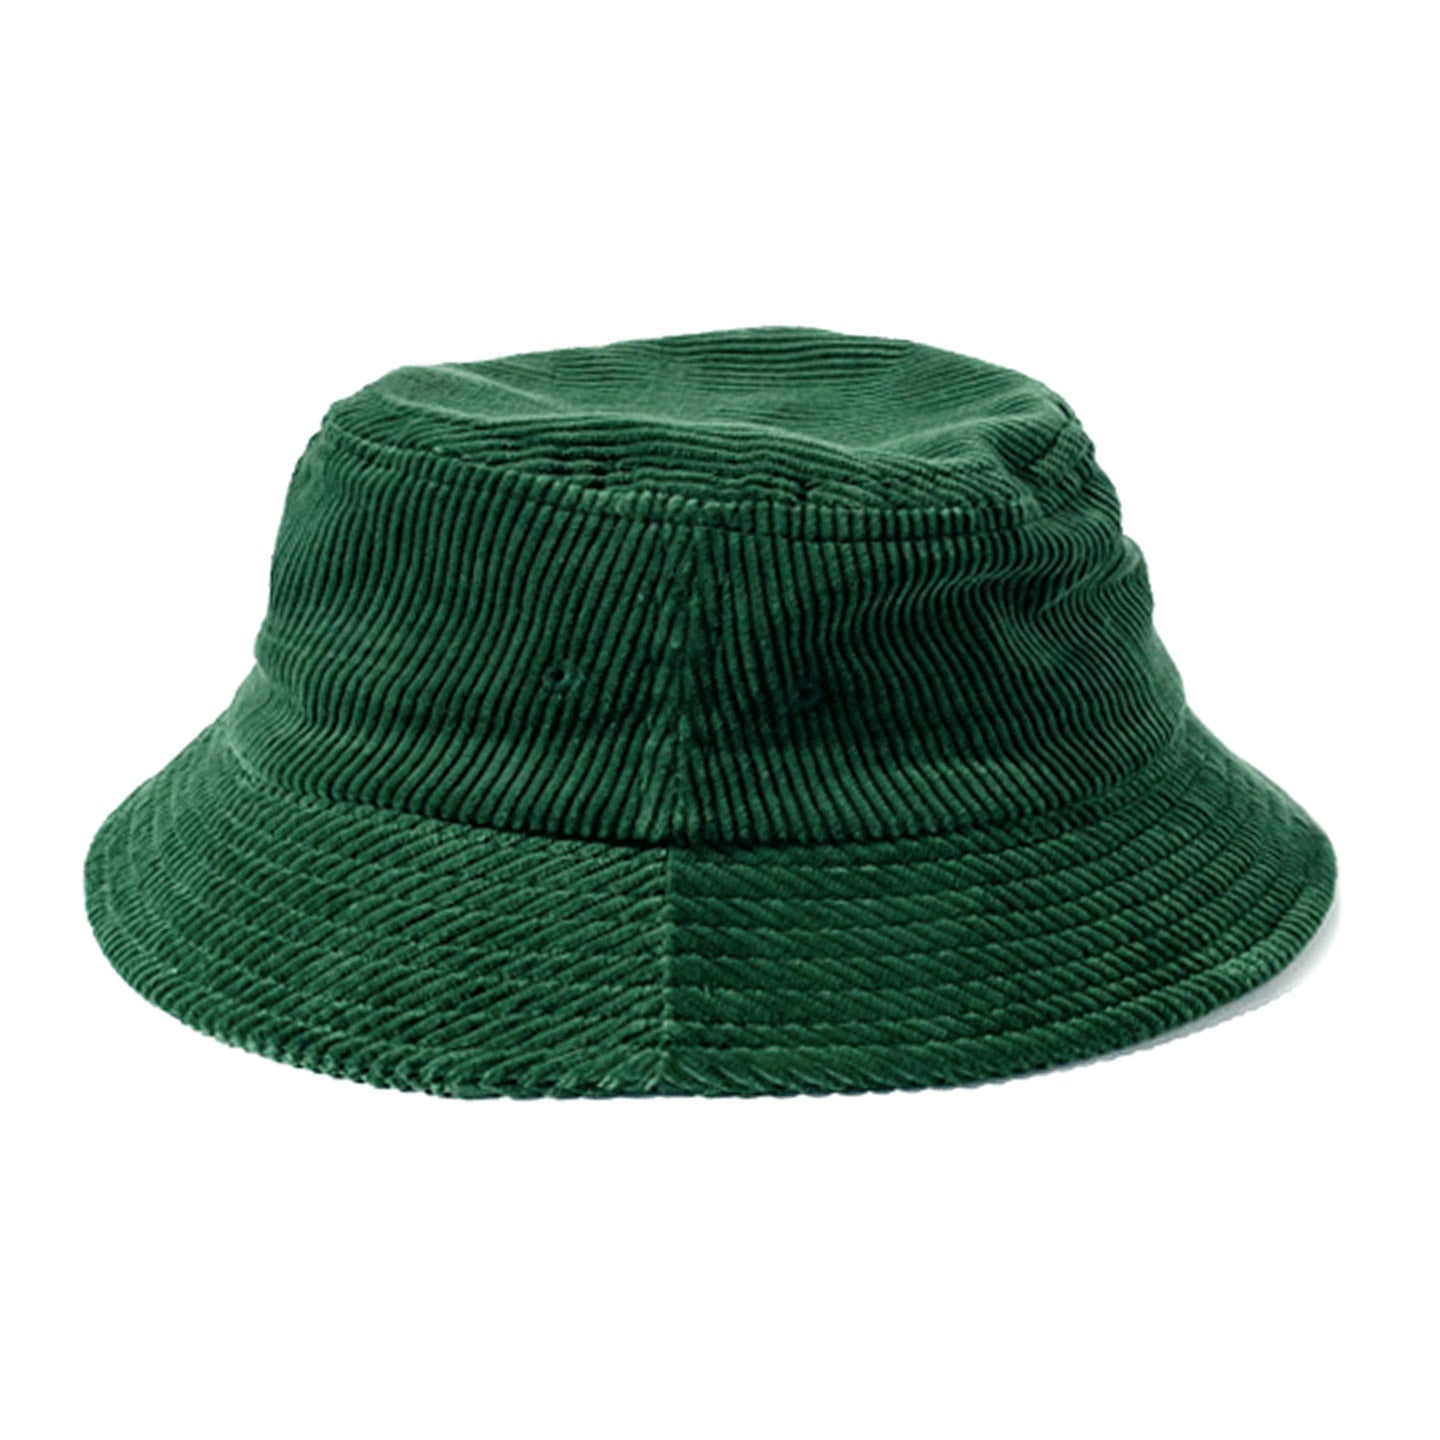 LITE YEAR BUCKET HAT GREEN CORDUROY